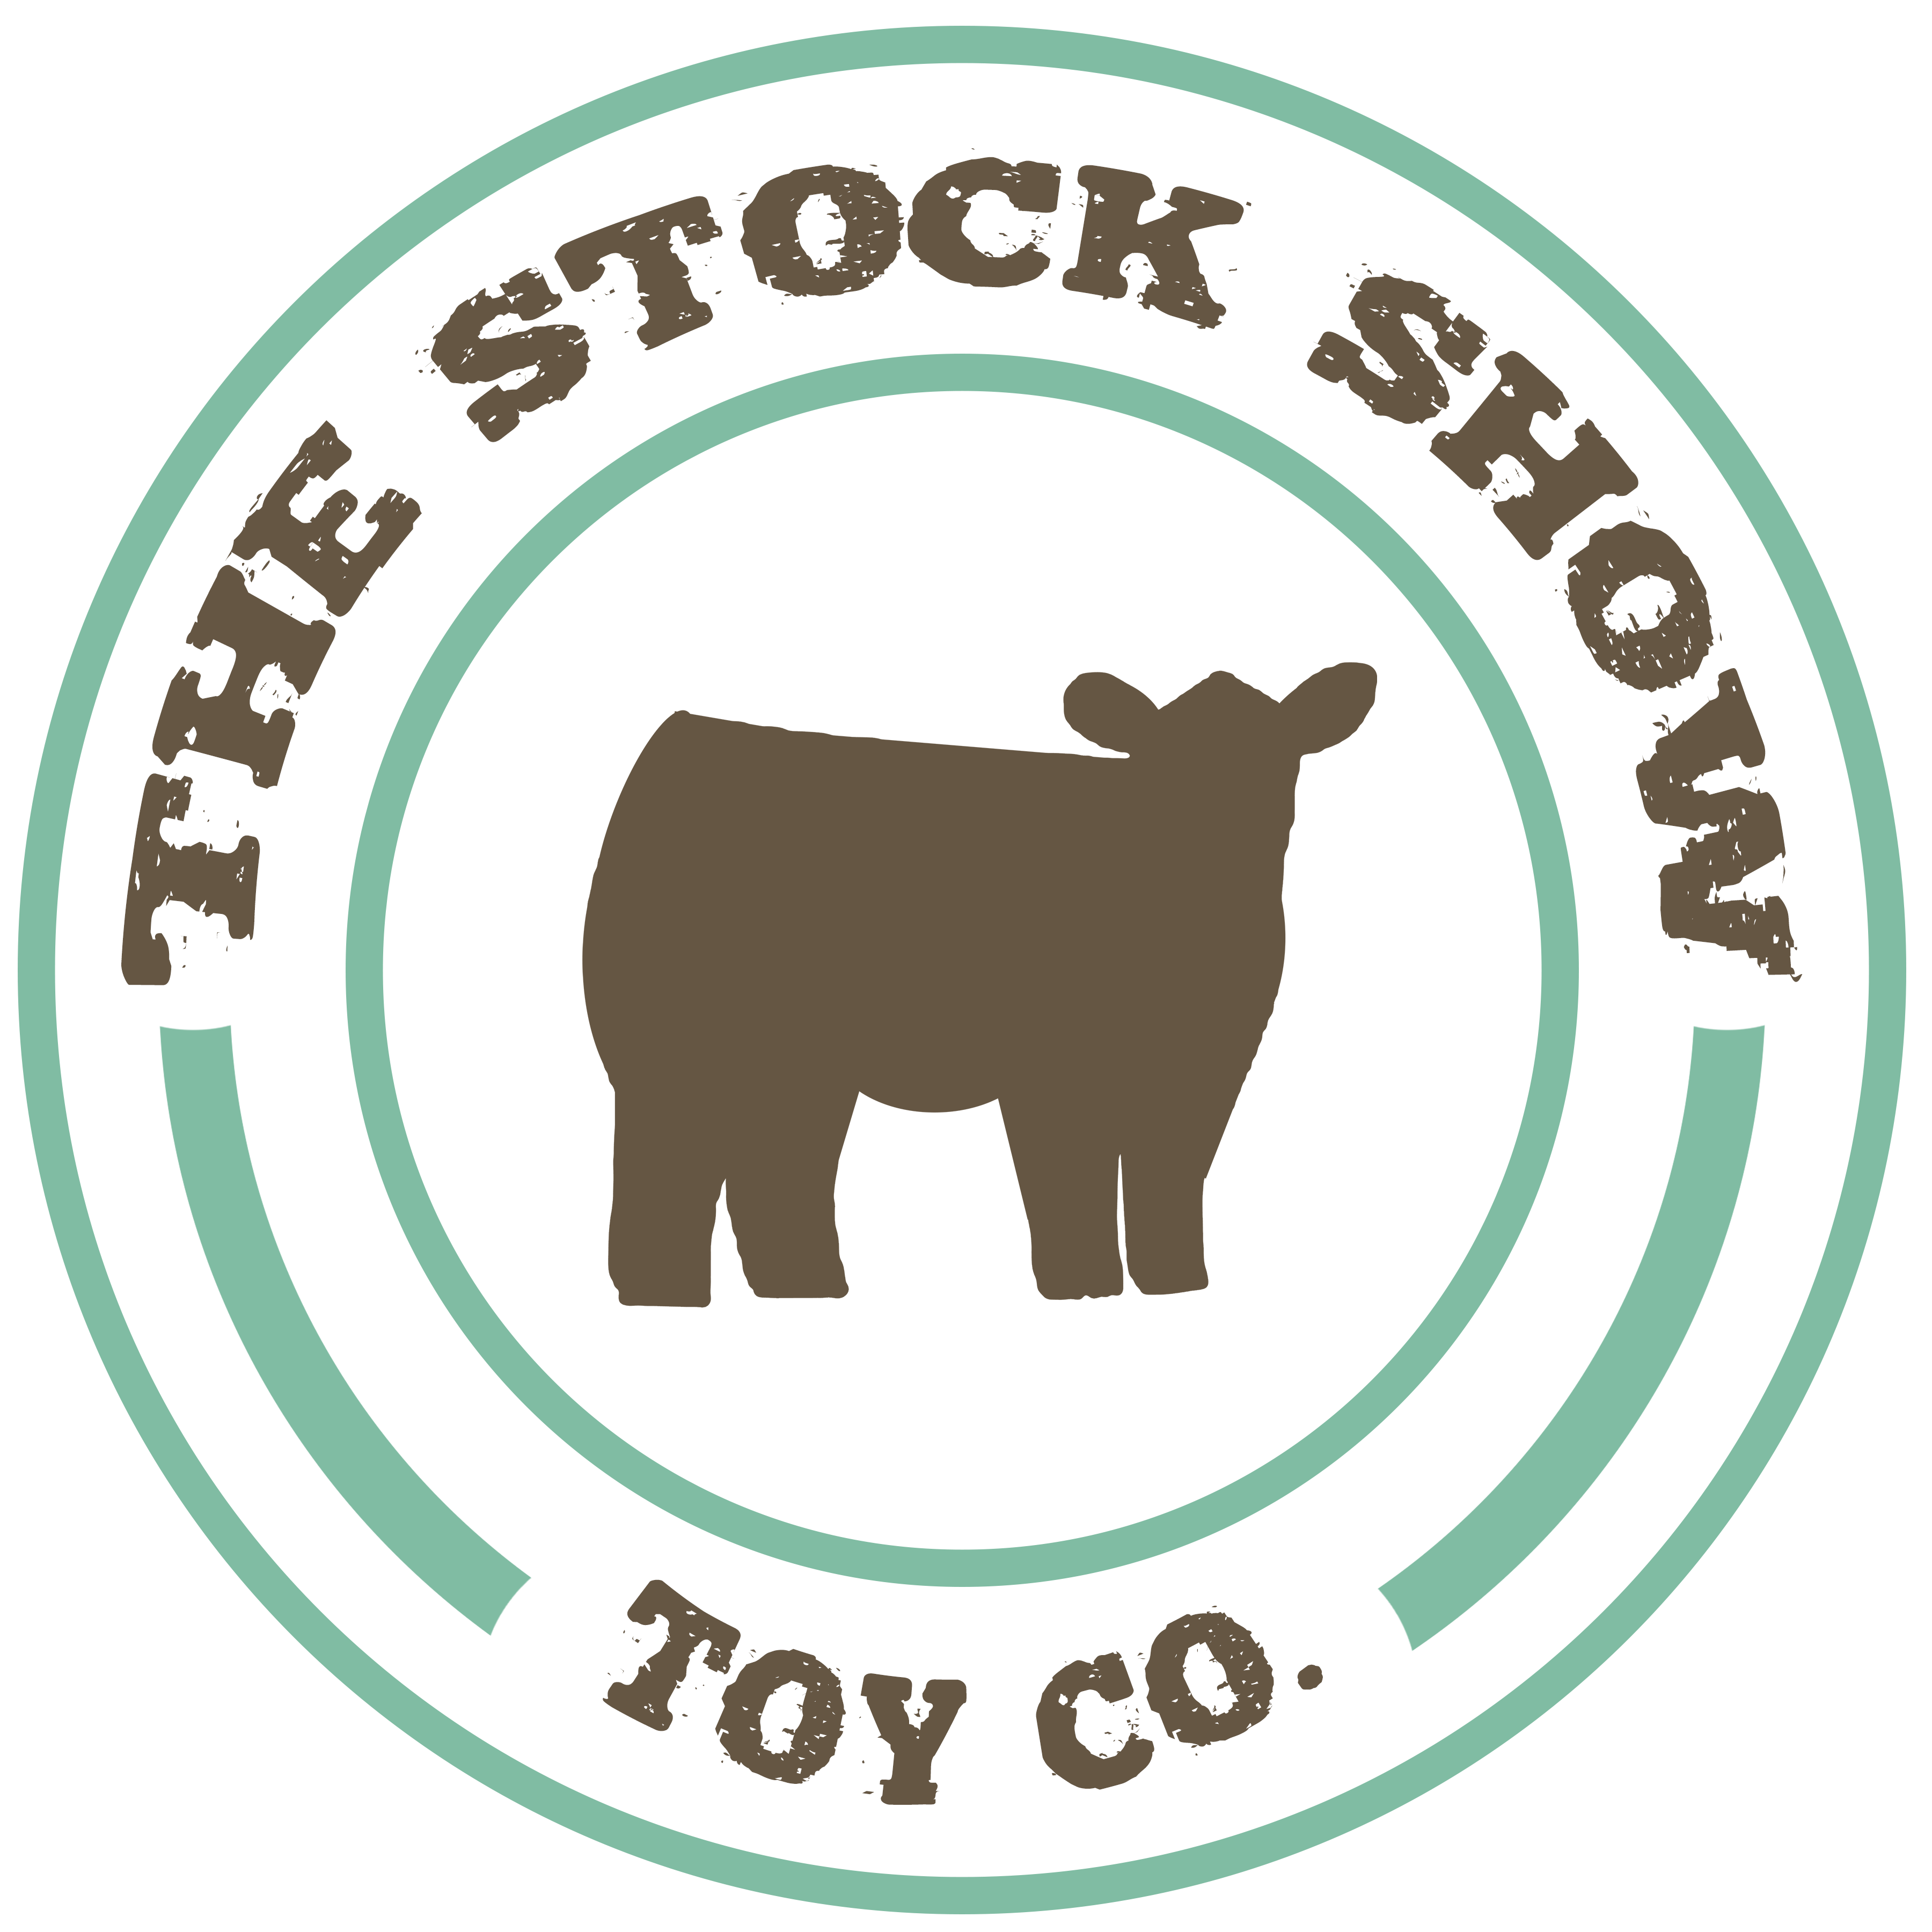 Stock Show Toys Co.